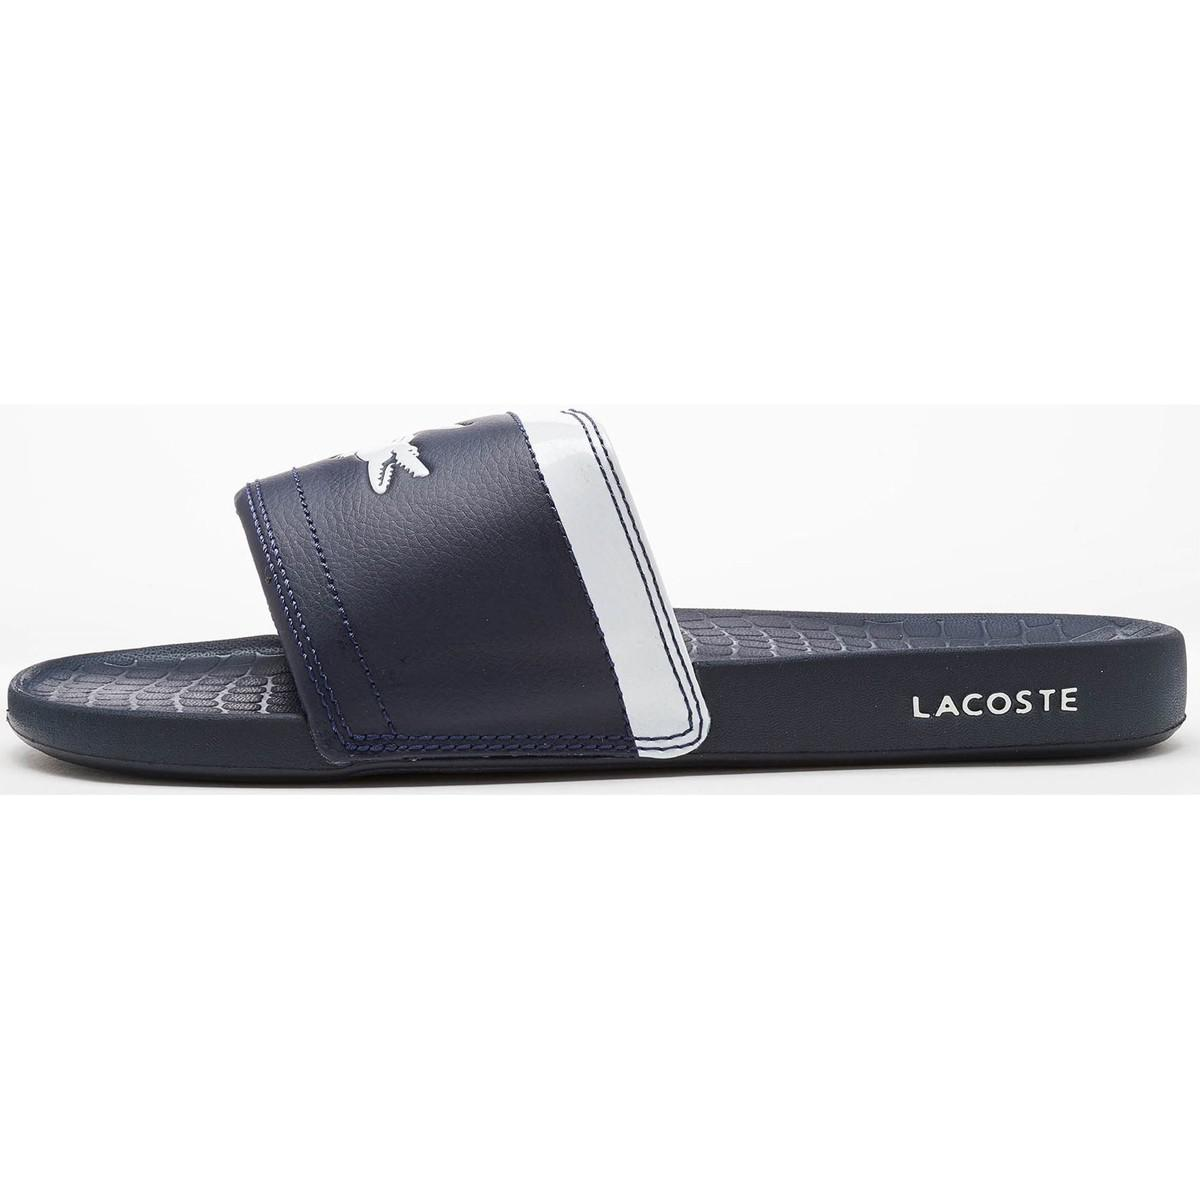 66c6adb62aa0 Lacoste Fraisier Brd1 Us Spm Slide Pool Beach Sandals In Blue ...